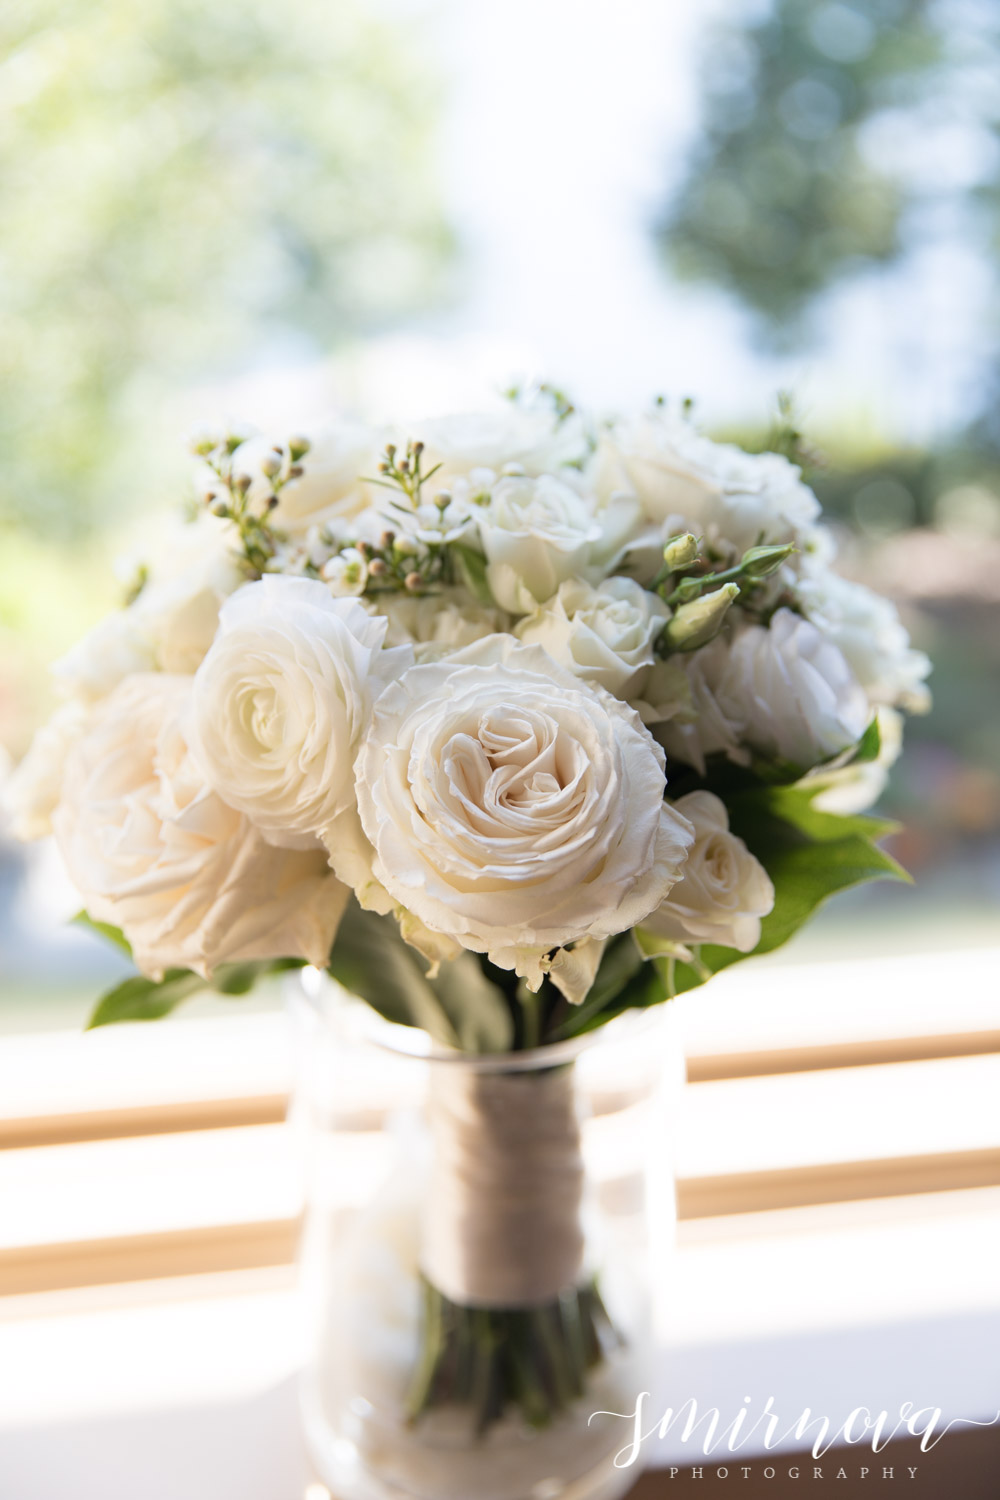 wedding bouquet Smirnova Photography by Alyssa